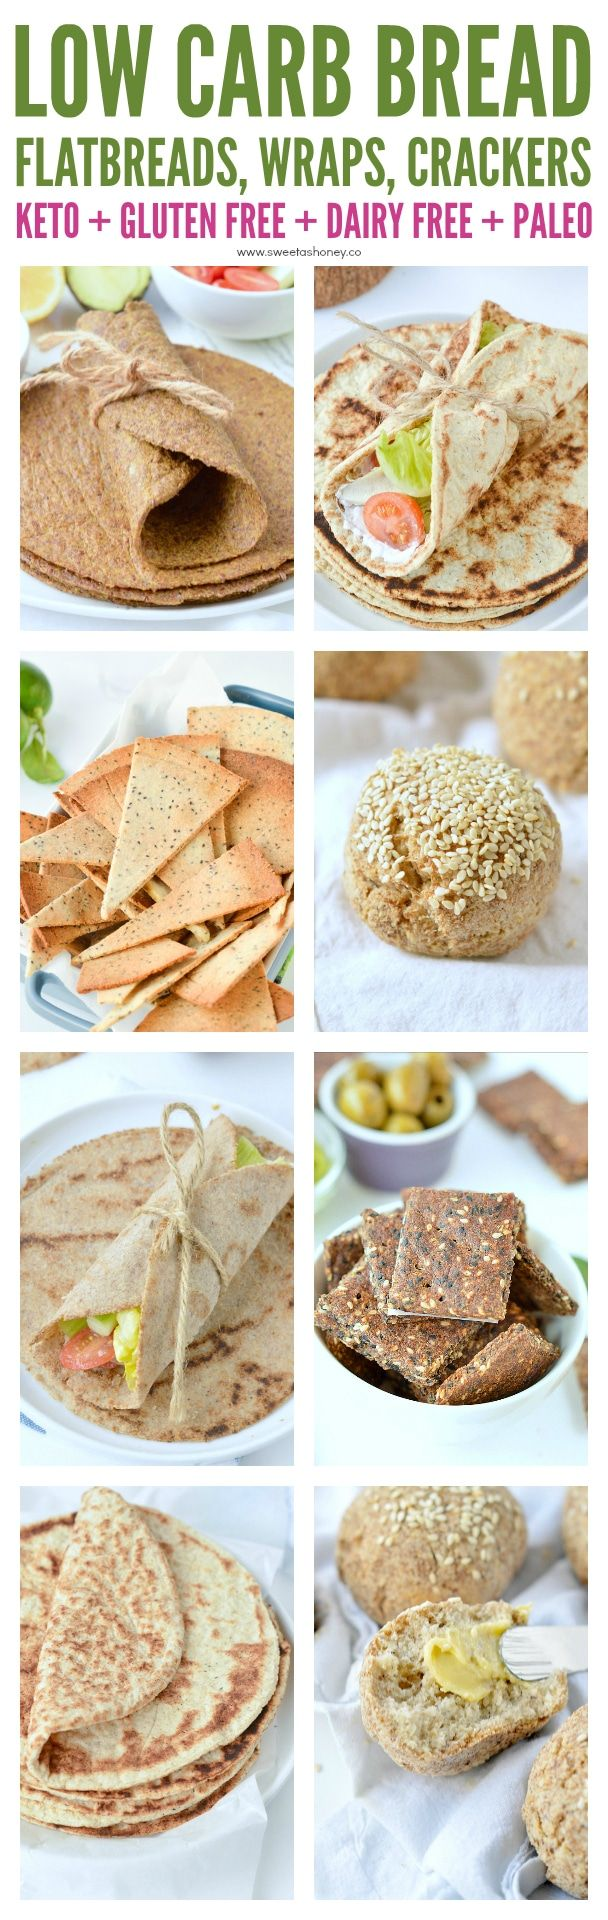 Low carb bread - keto bread recipes made with almond flour, coconut flour , psyllium husk or flaxseed meal. Easy, homemade recipes: flatbread, buns, wraps and more. #keto #lowcarb #almondflour #coconutflour #flaxseedmealrecipes